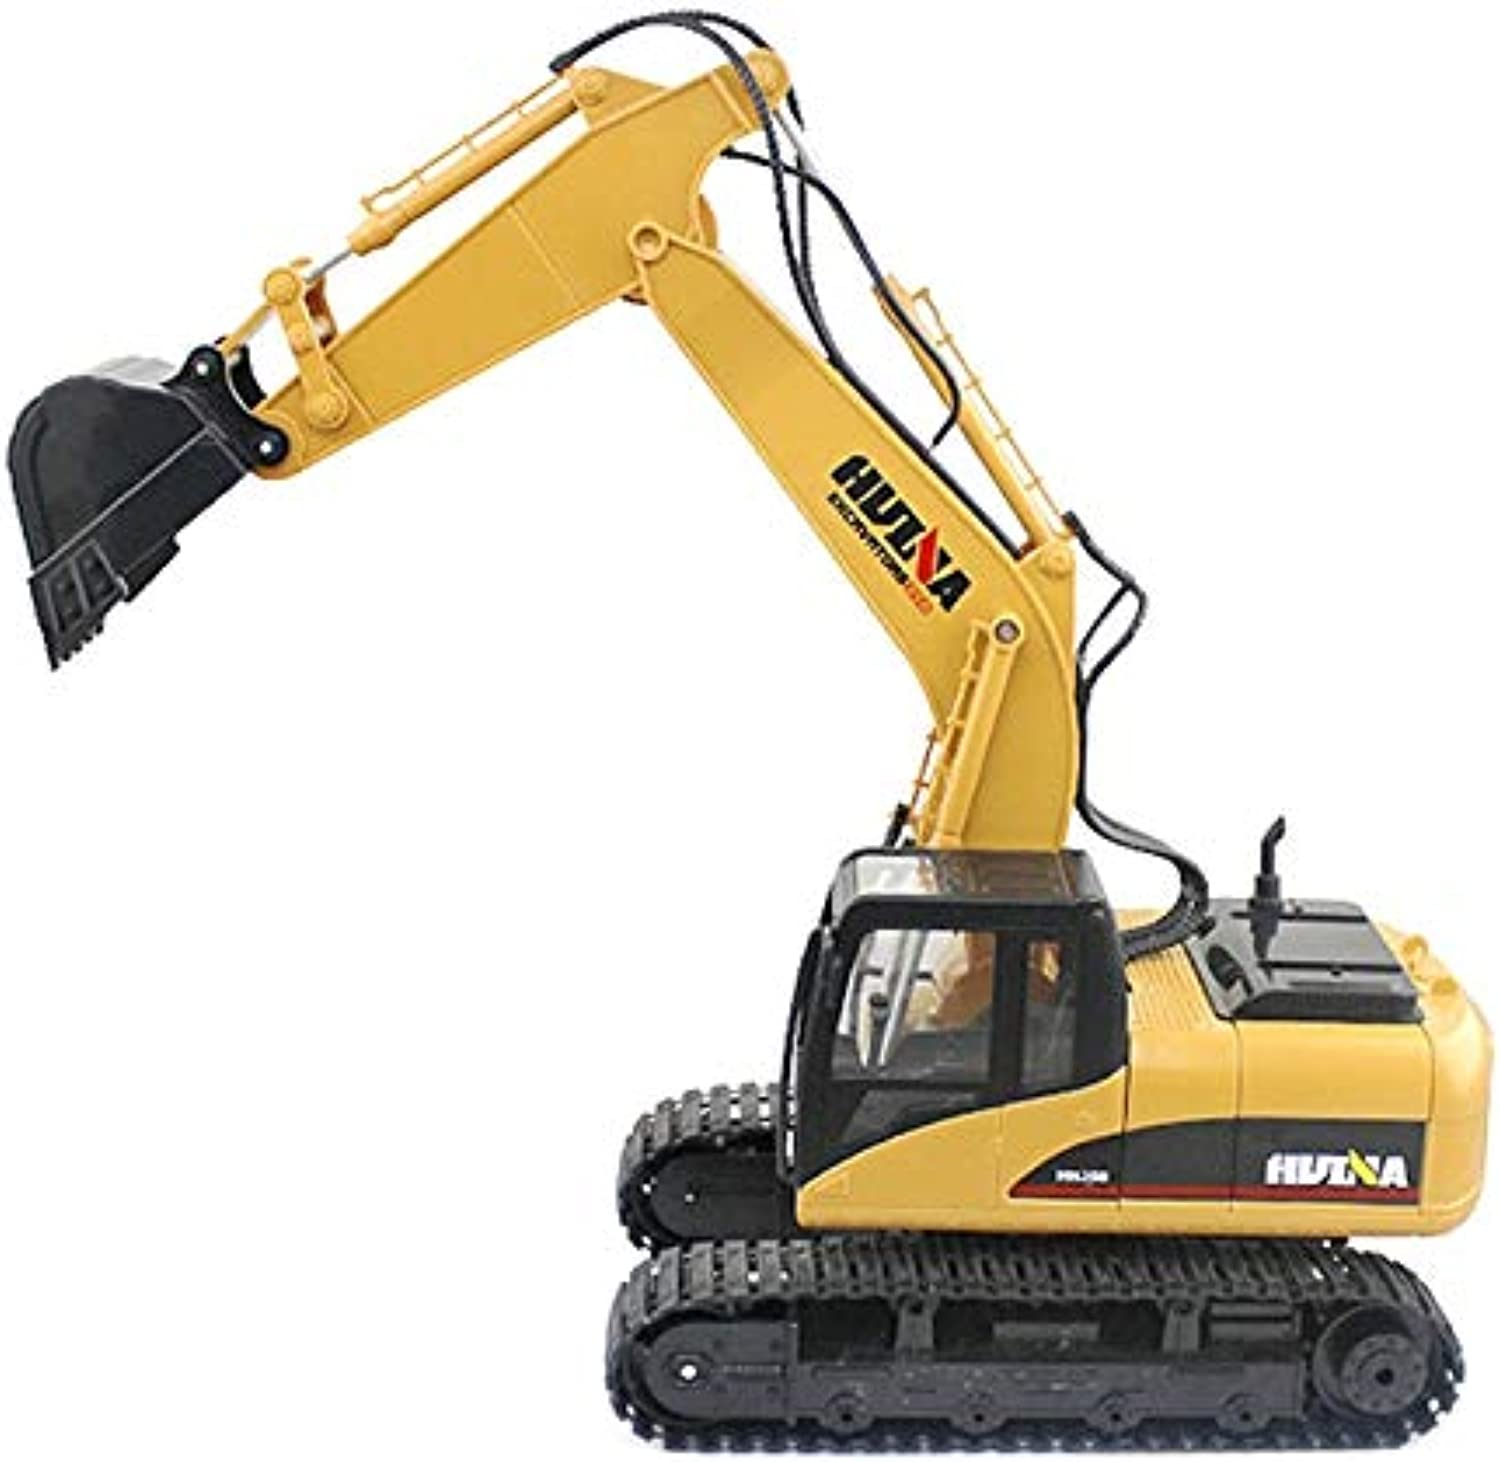 Generic HuiNa 1550 RC Crawler Car 15CH 2.4G 1 14 RC Metal Excavator Charging 1 12 RC Car with Battery RC Alloy Excavator RTR for Kids Yellow